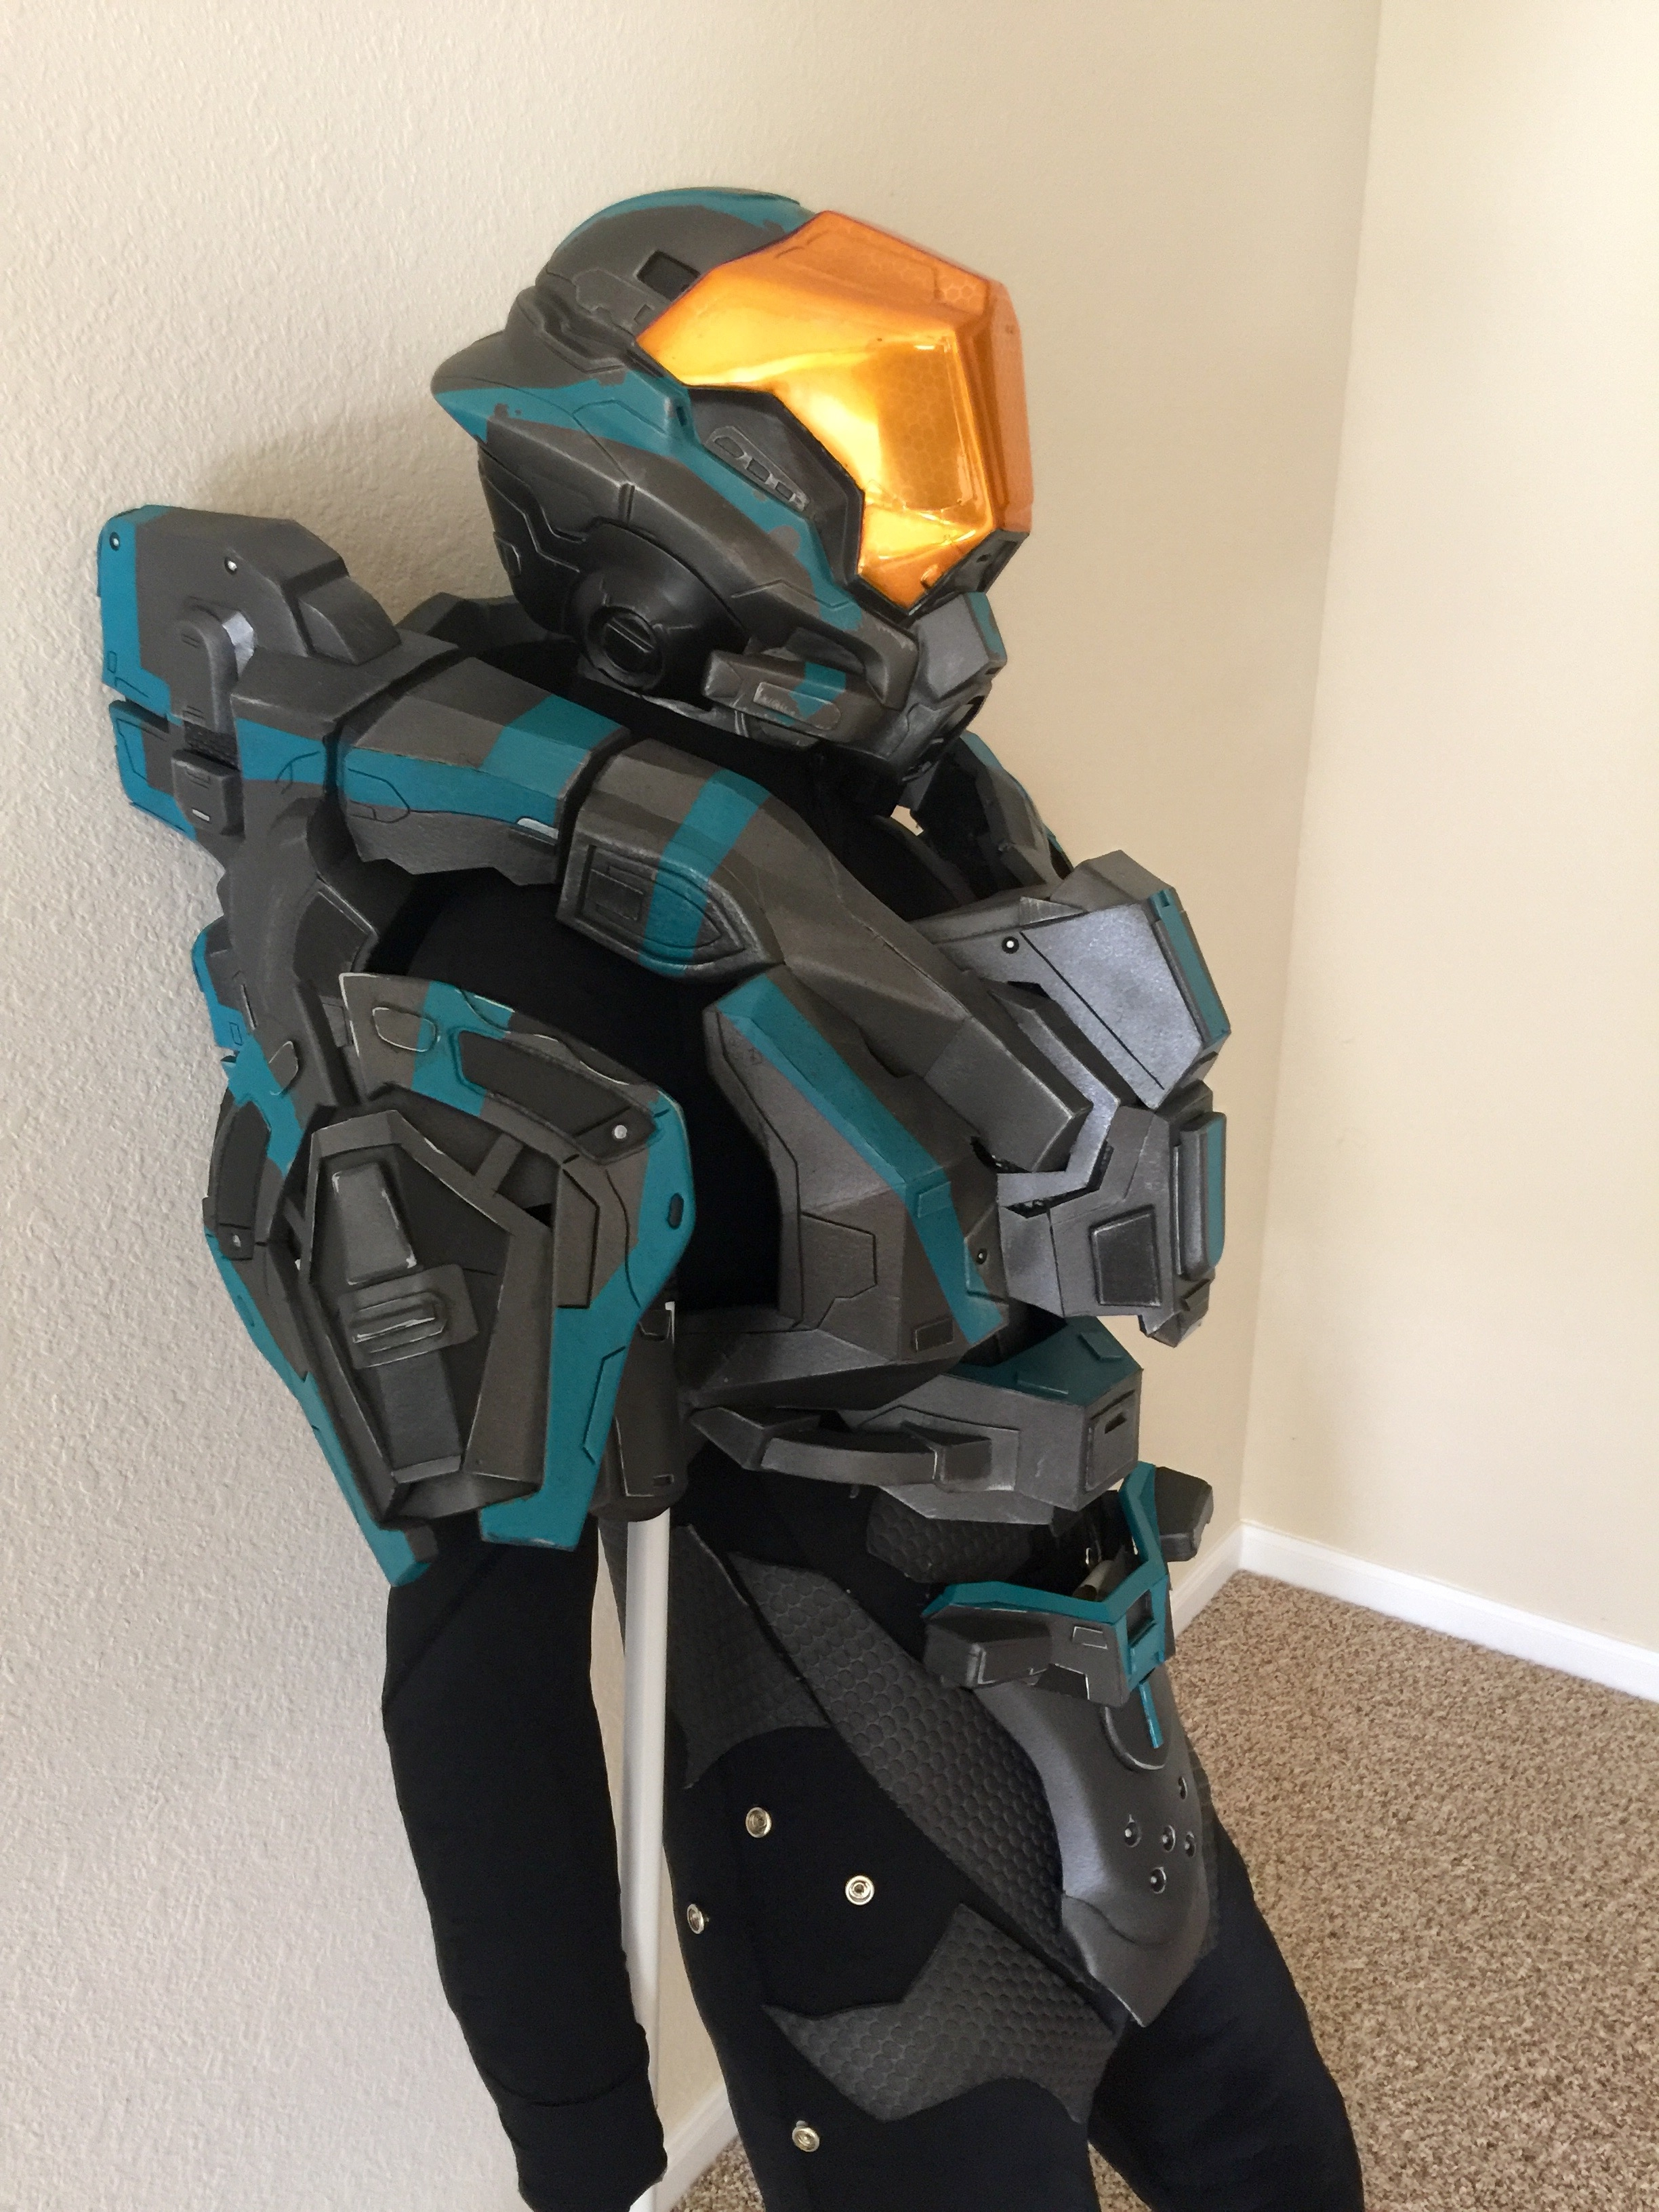 hey thanks for this opportunity to let us show our creativity my spartan was built from eva foam and and foam sheets for the undersuit patterns